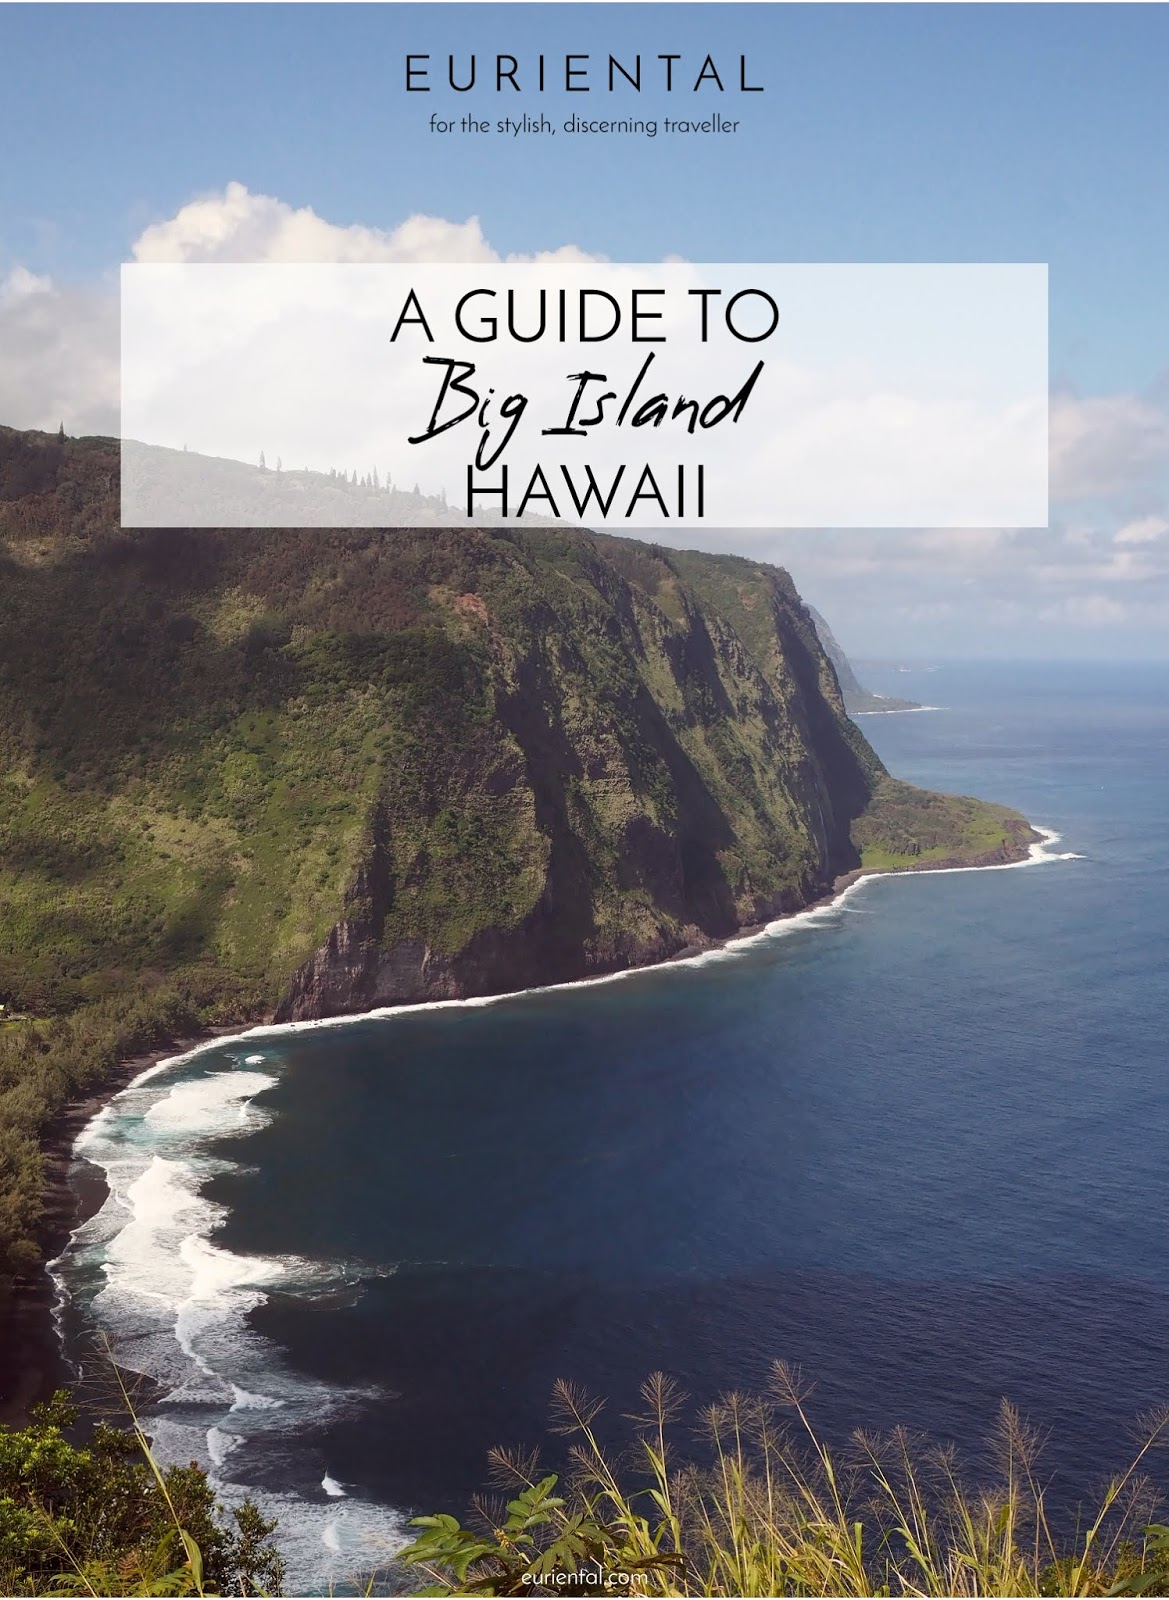 Euriental | luxury travel & style | Guide to Big Island, Hawaii